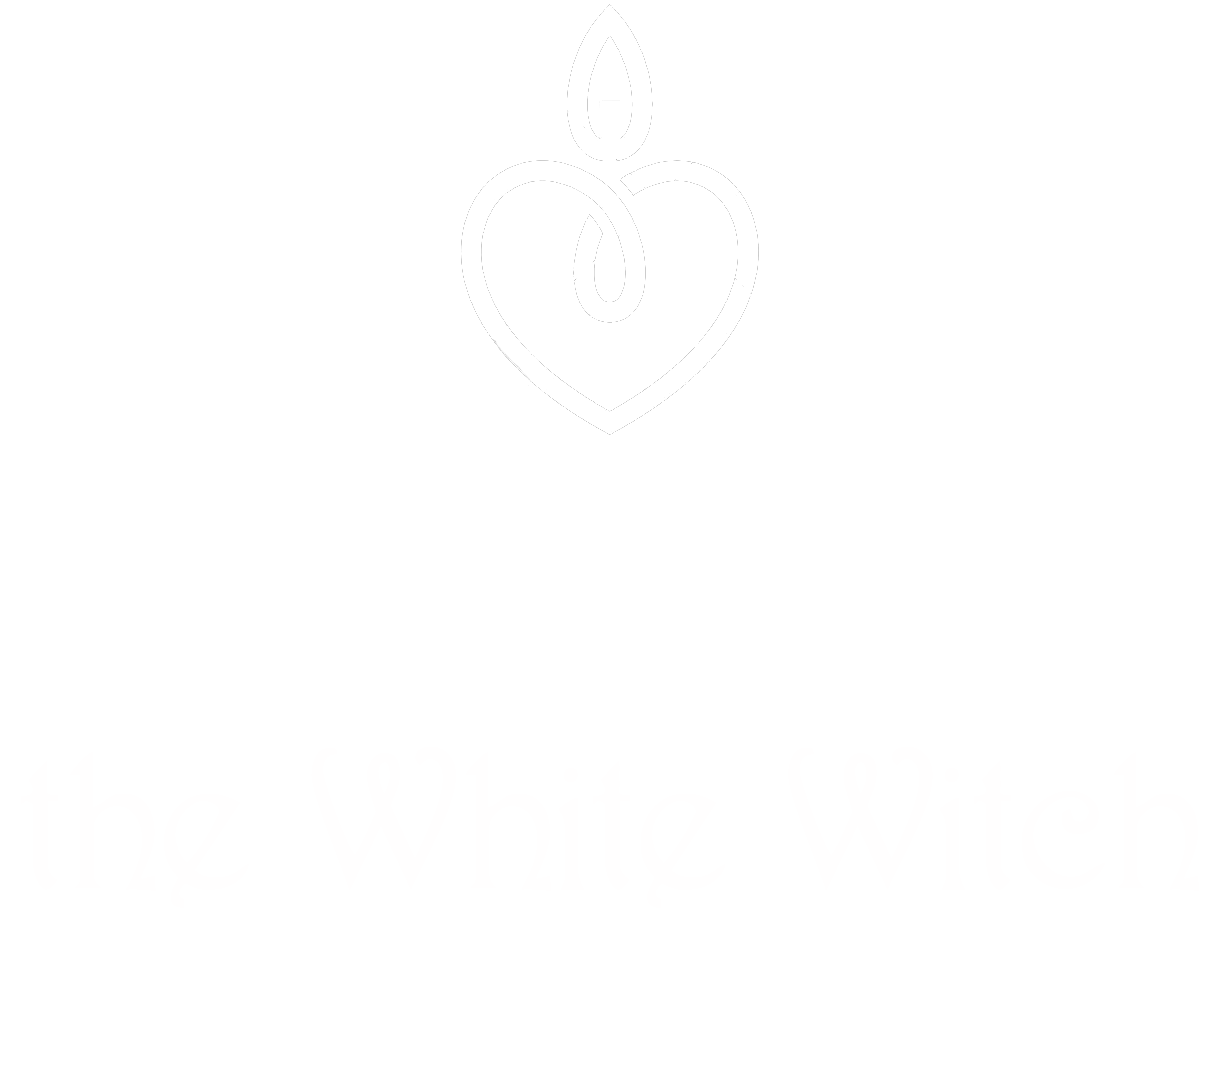 Spells — Hazel the White Witch Spell Caster